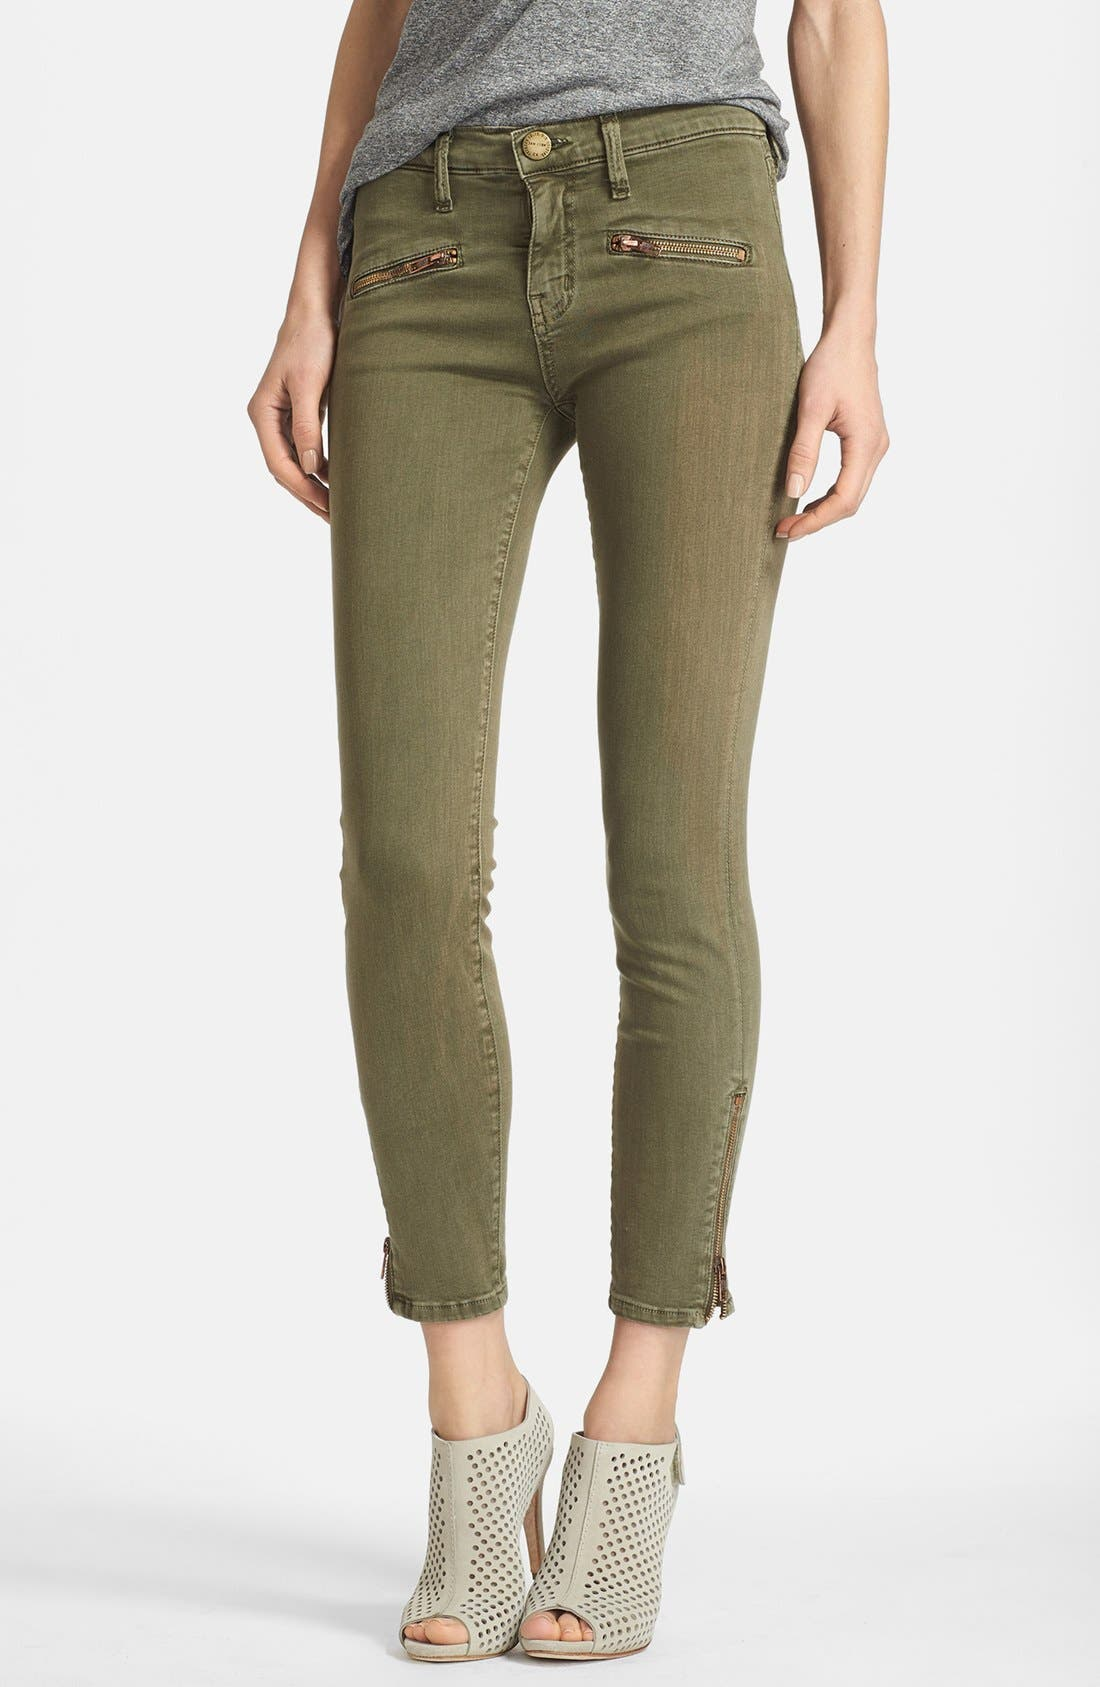 Alternate Image 1 Selected - Current/Elliott 'The Soho Zip Stiletto' Skinny Jeans (Army)